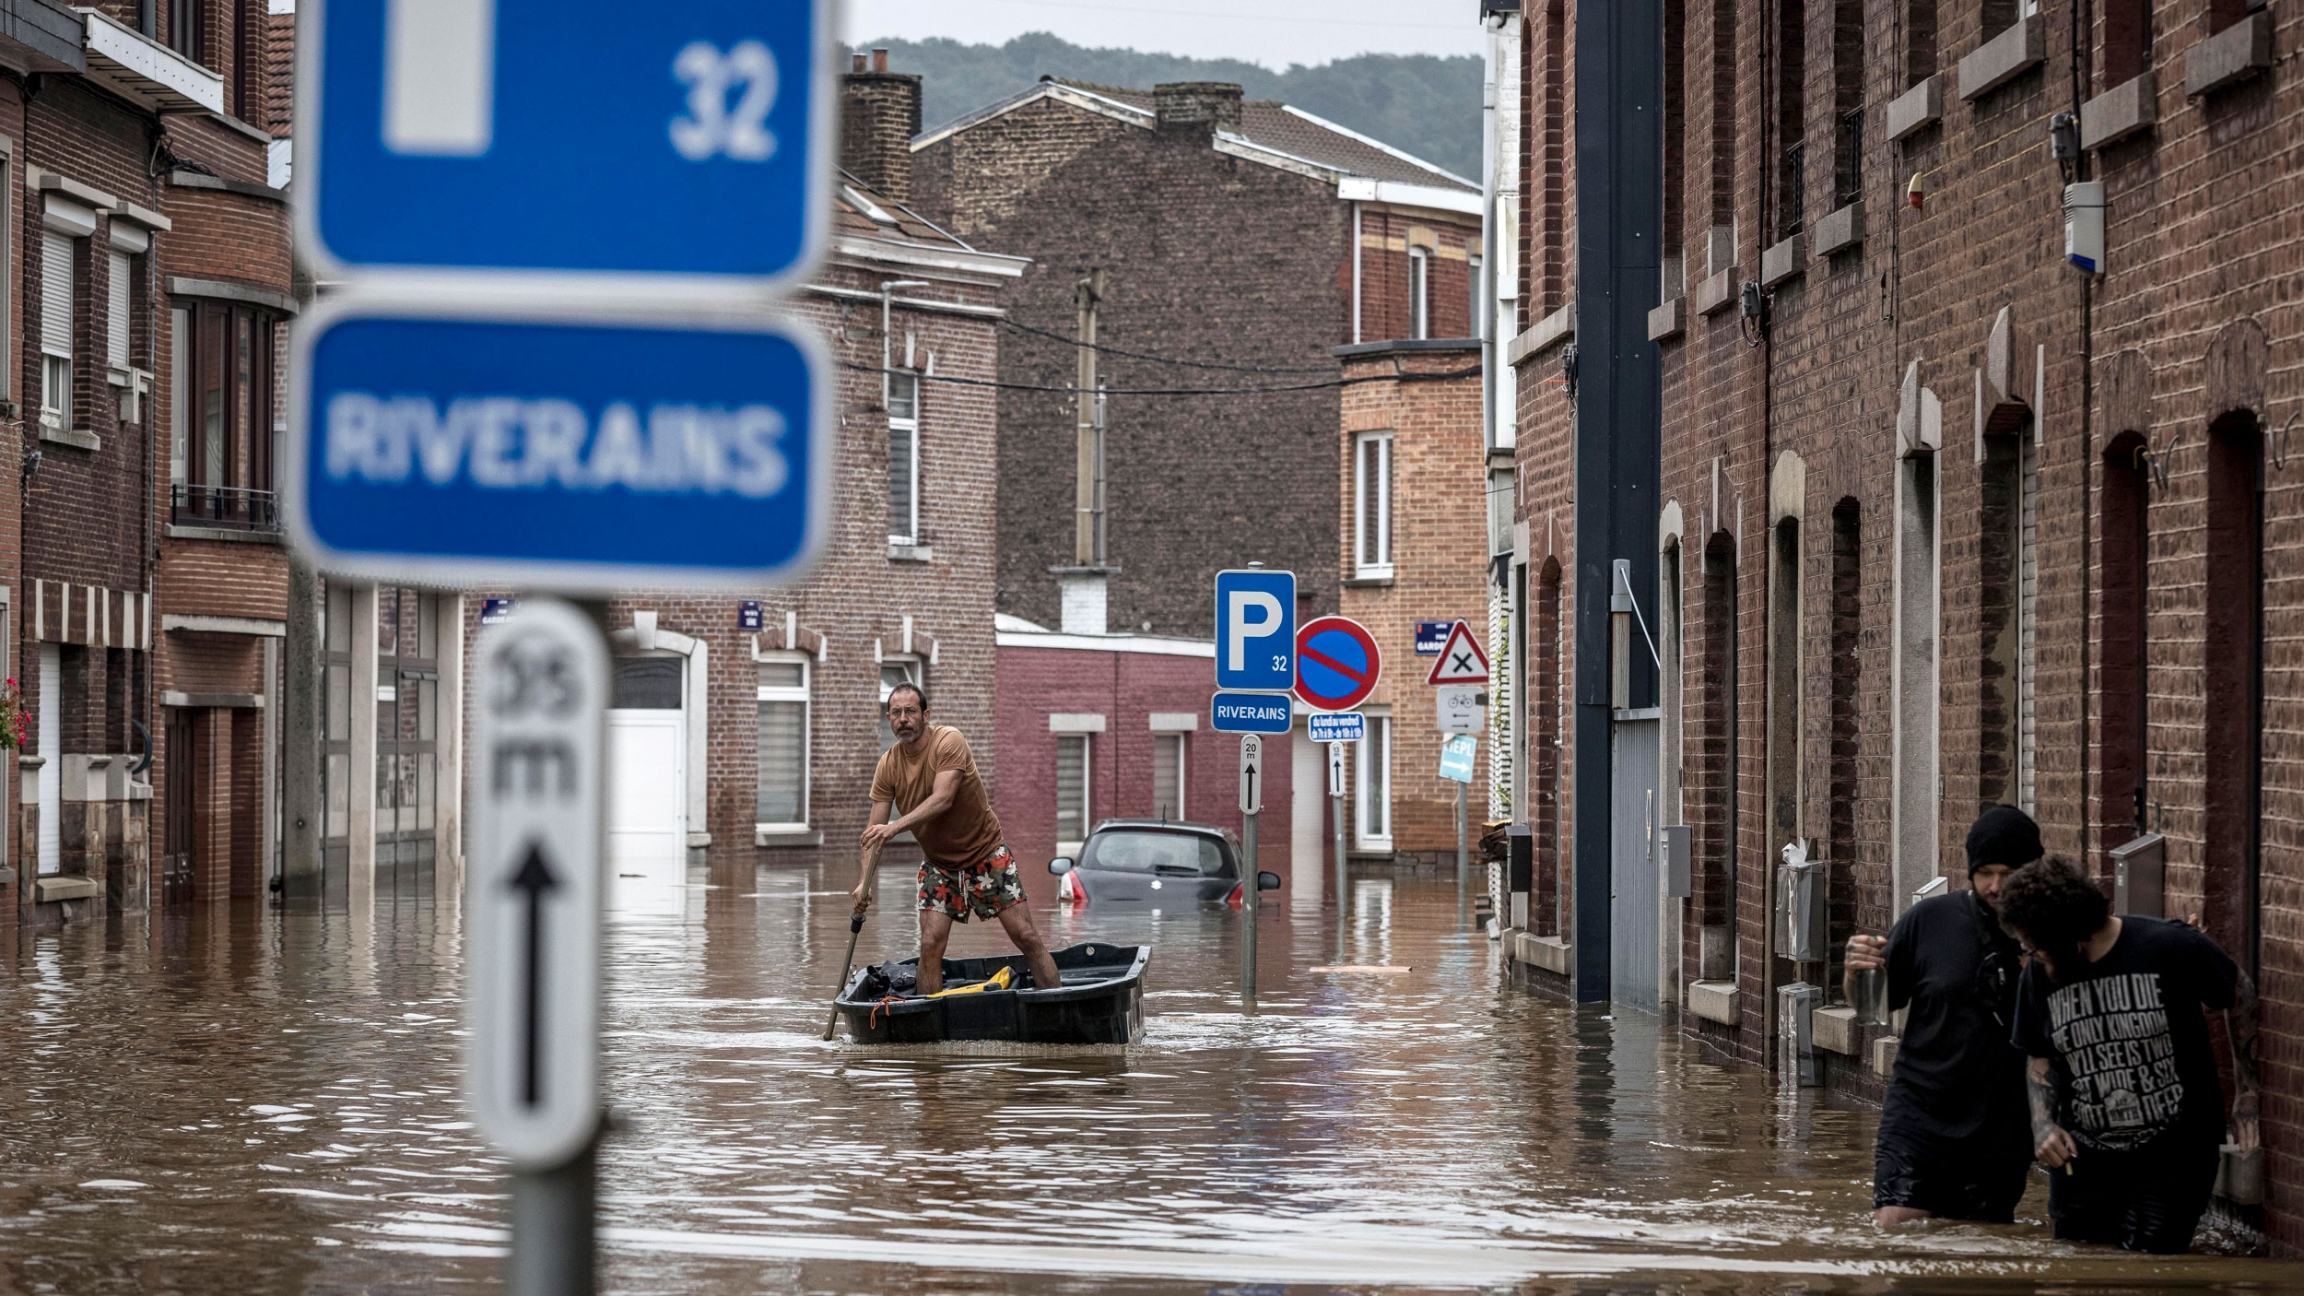 A man is shown standing in a canoe and rowing down an city street flooded by several feet.